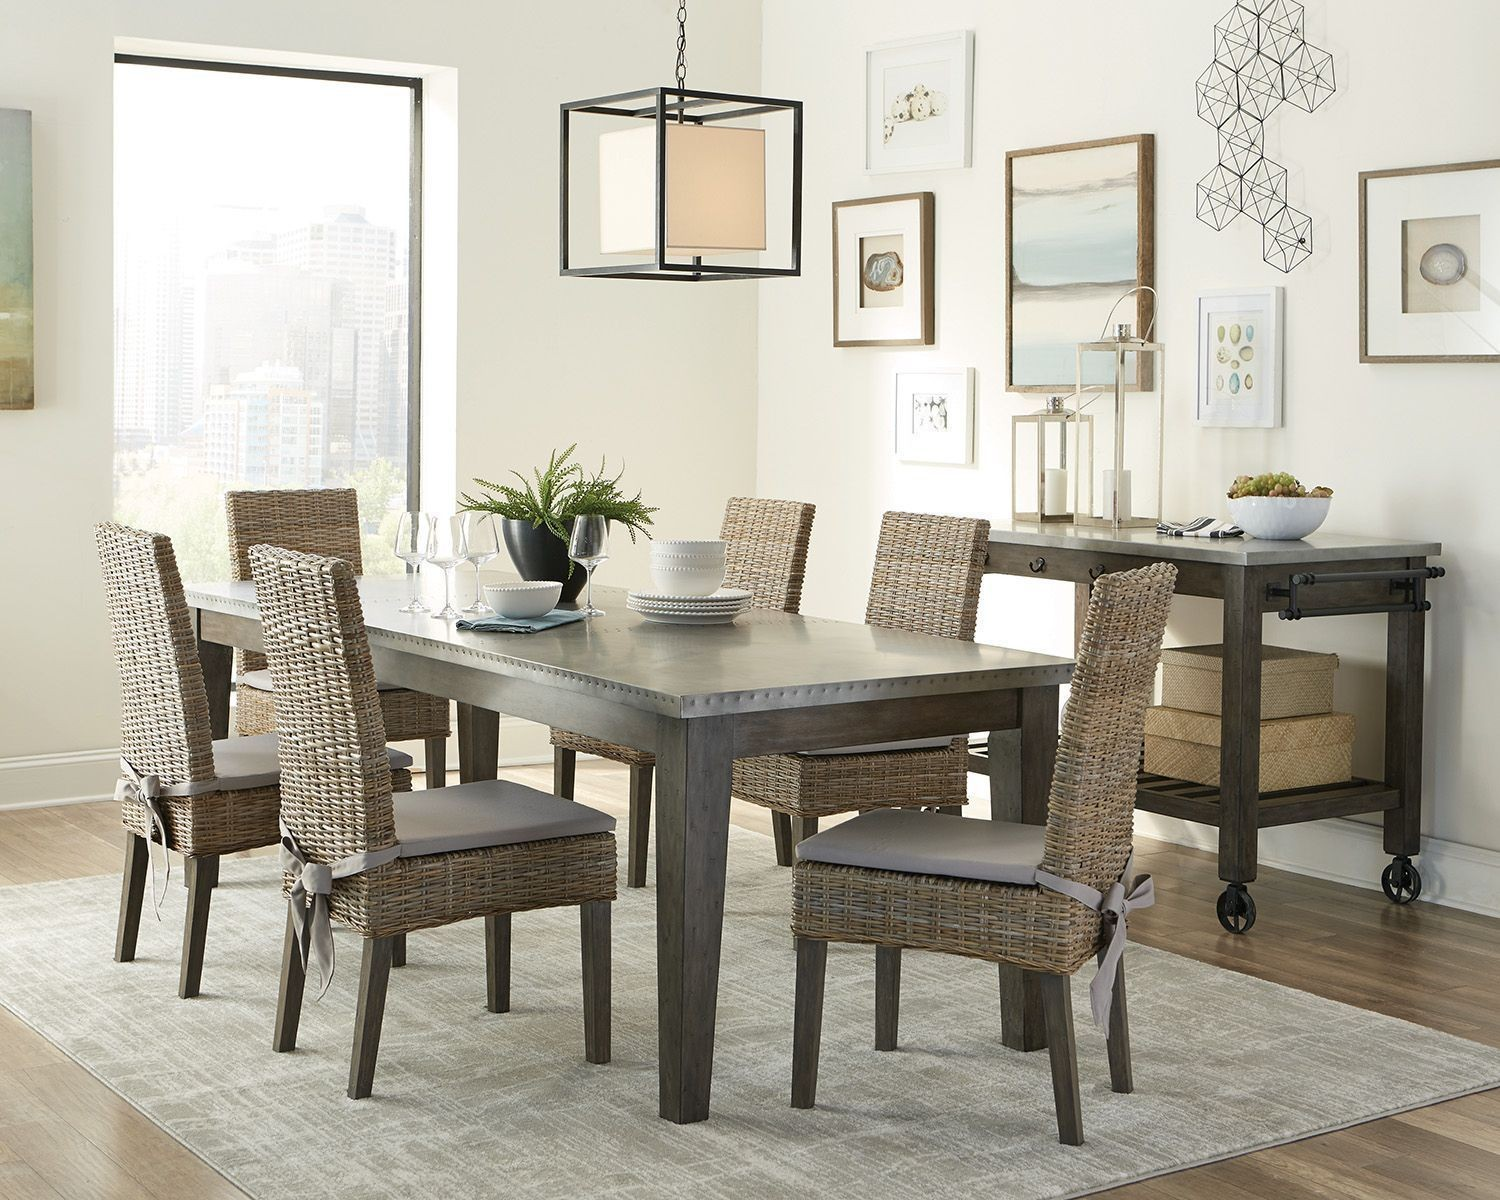 Davenport Aged Patina Dining Room Set By Scott Living From Coaster Coleman Furniture